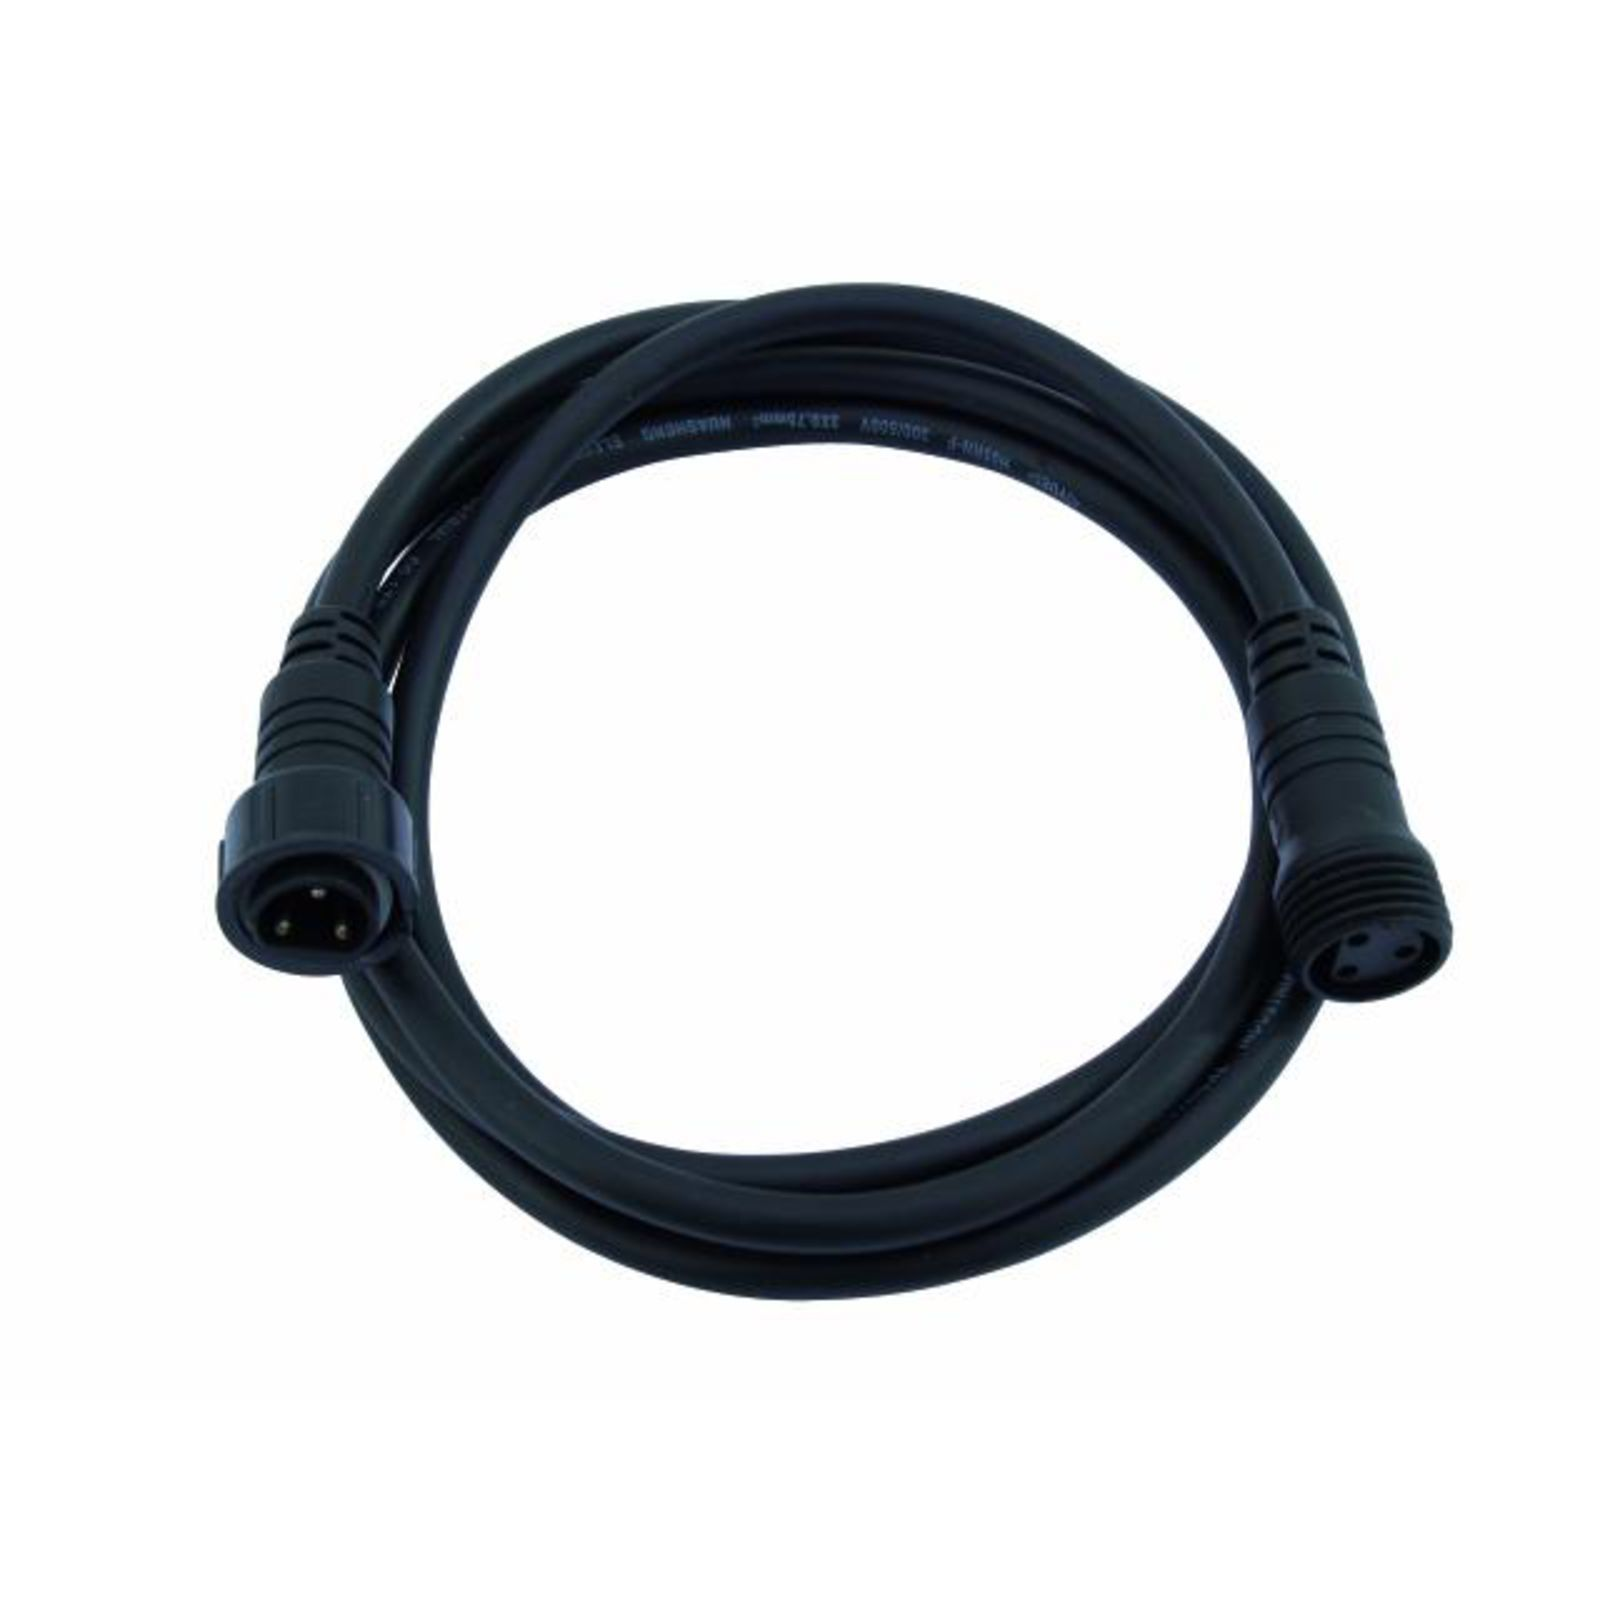 Eurolite DMX-Cable IP65, 2m for PAR/Flood Produktbillede